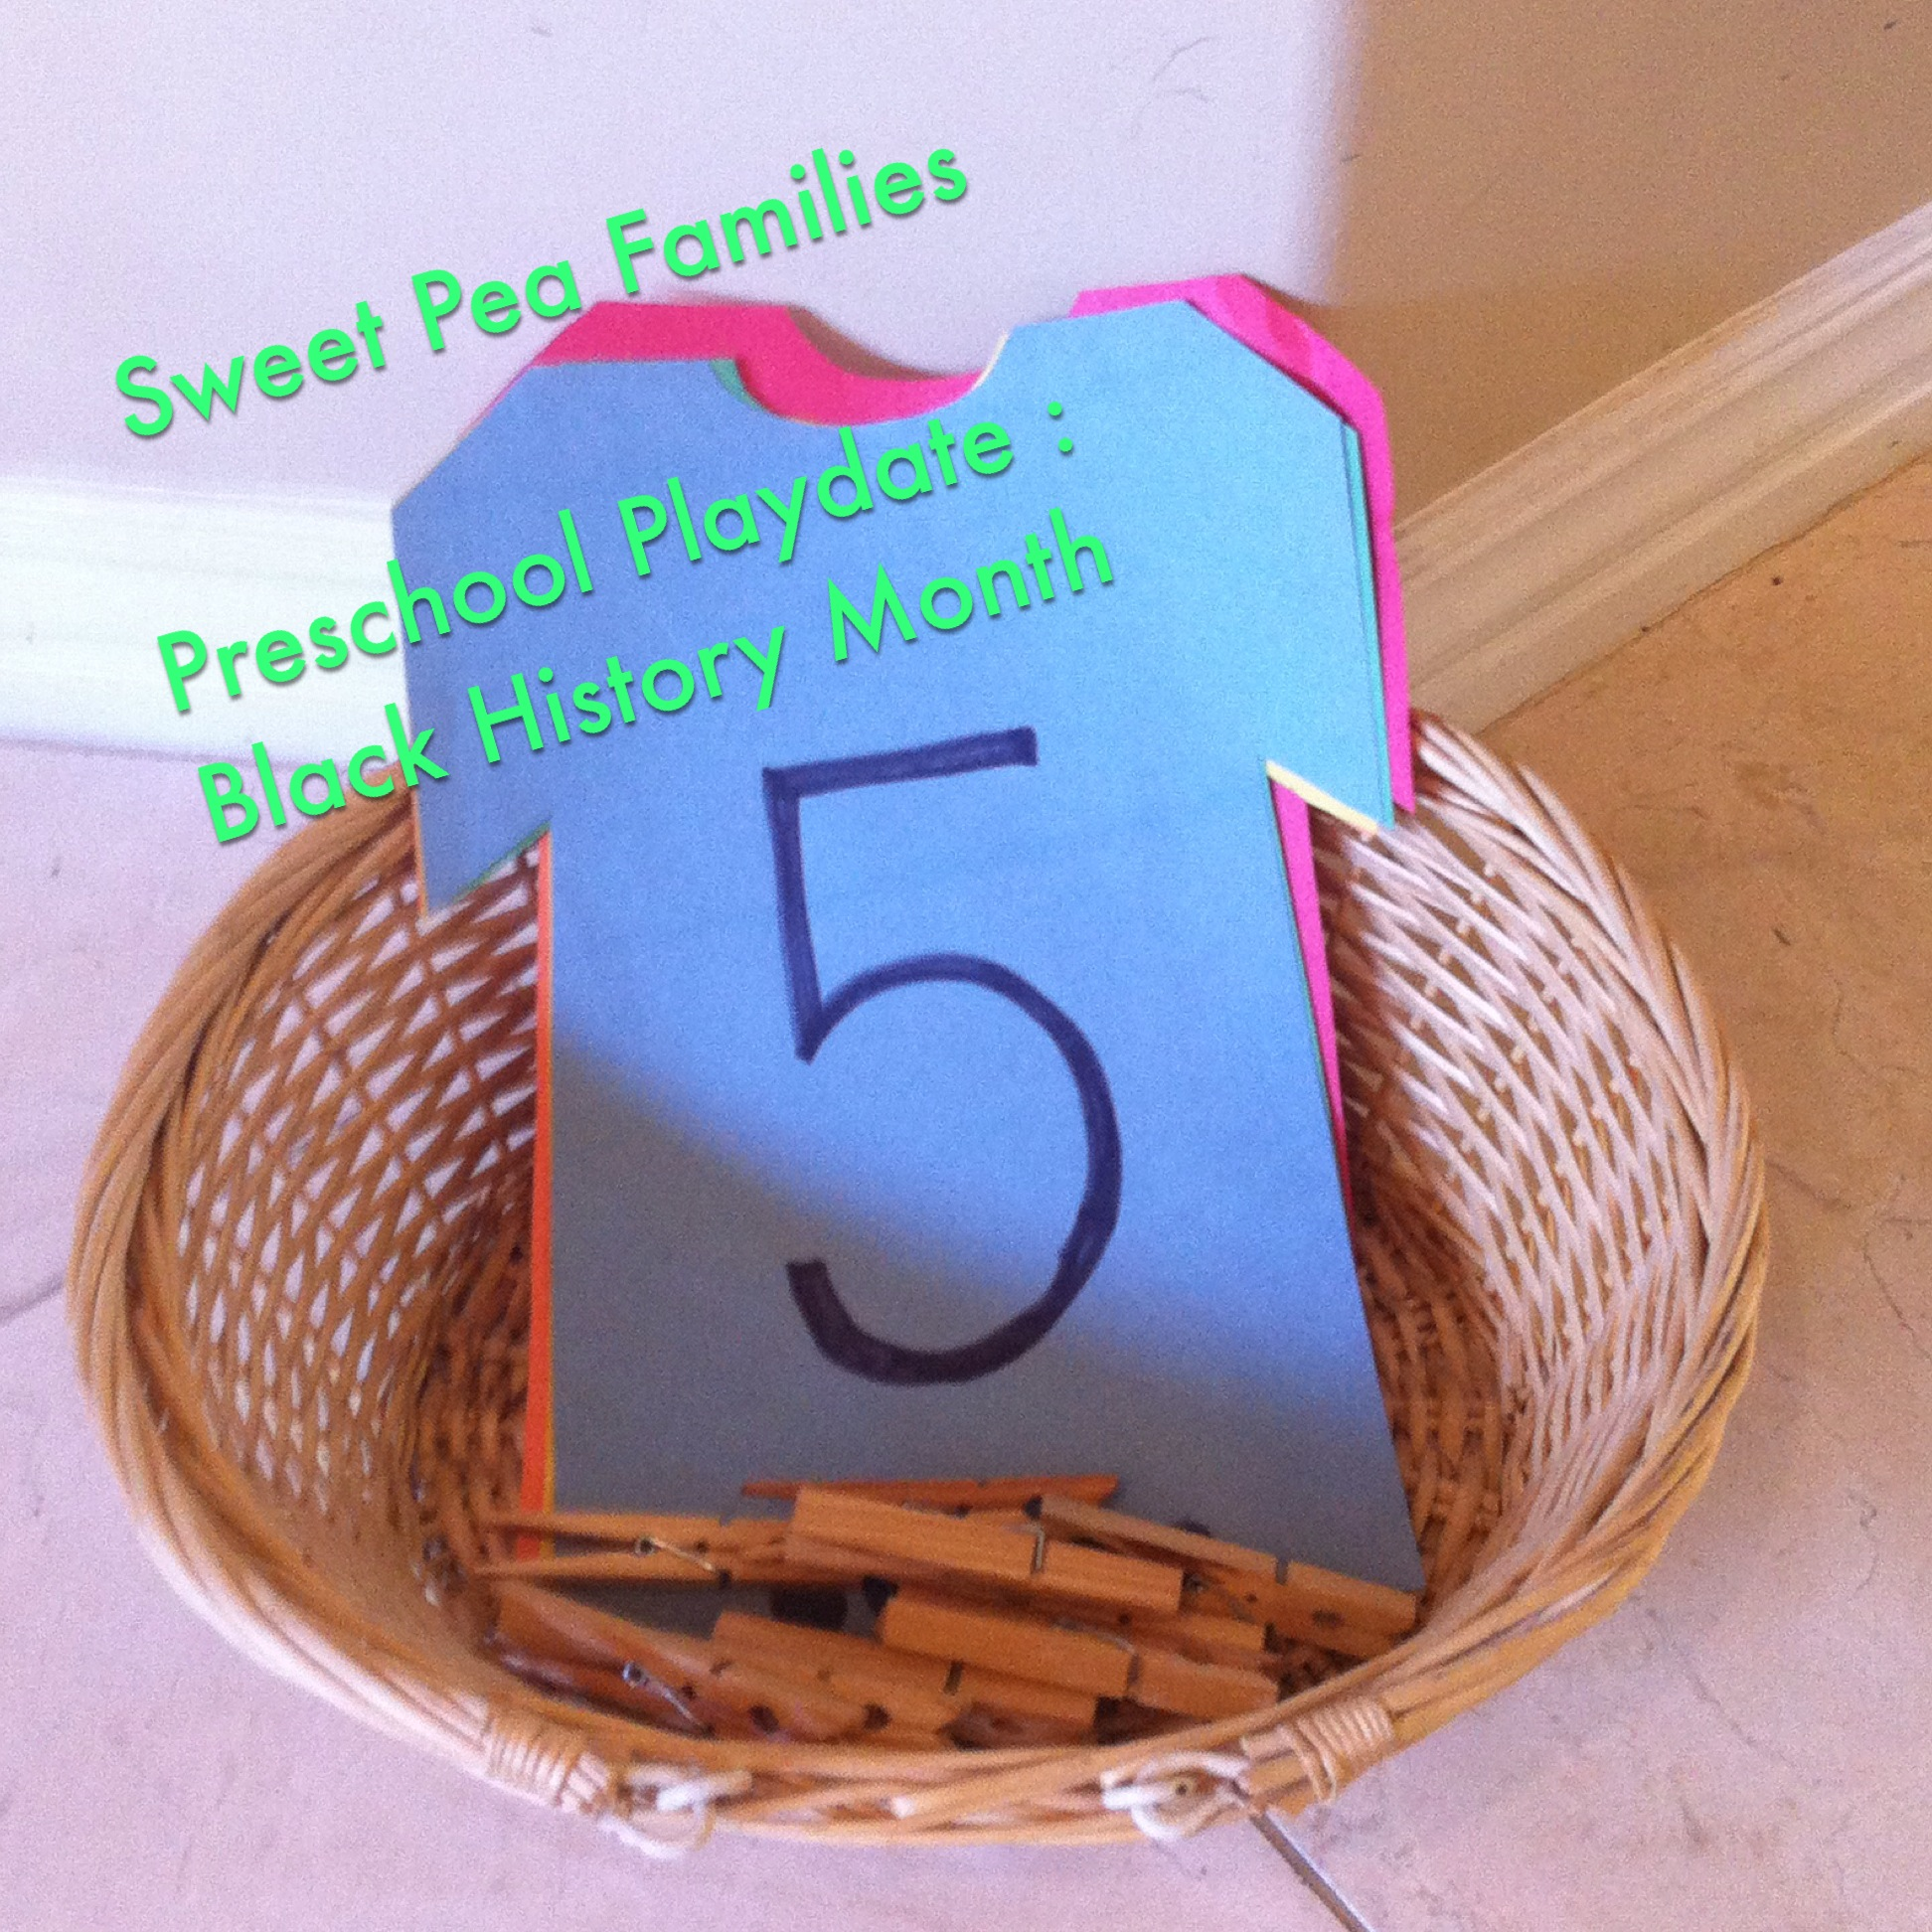 Black history month sweet pea families for African arts and crafts history